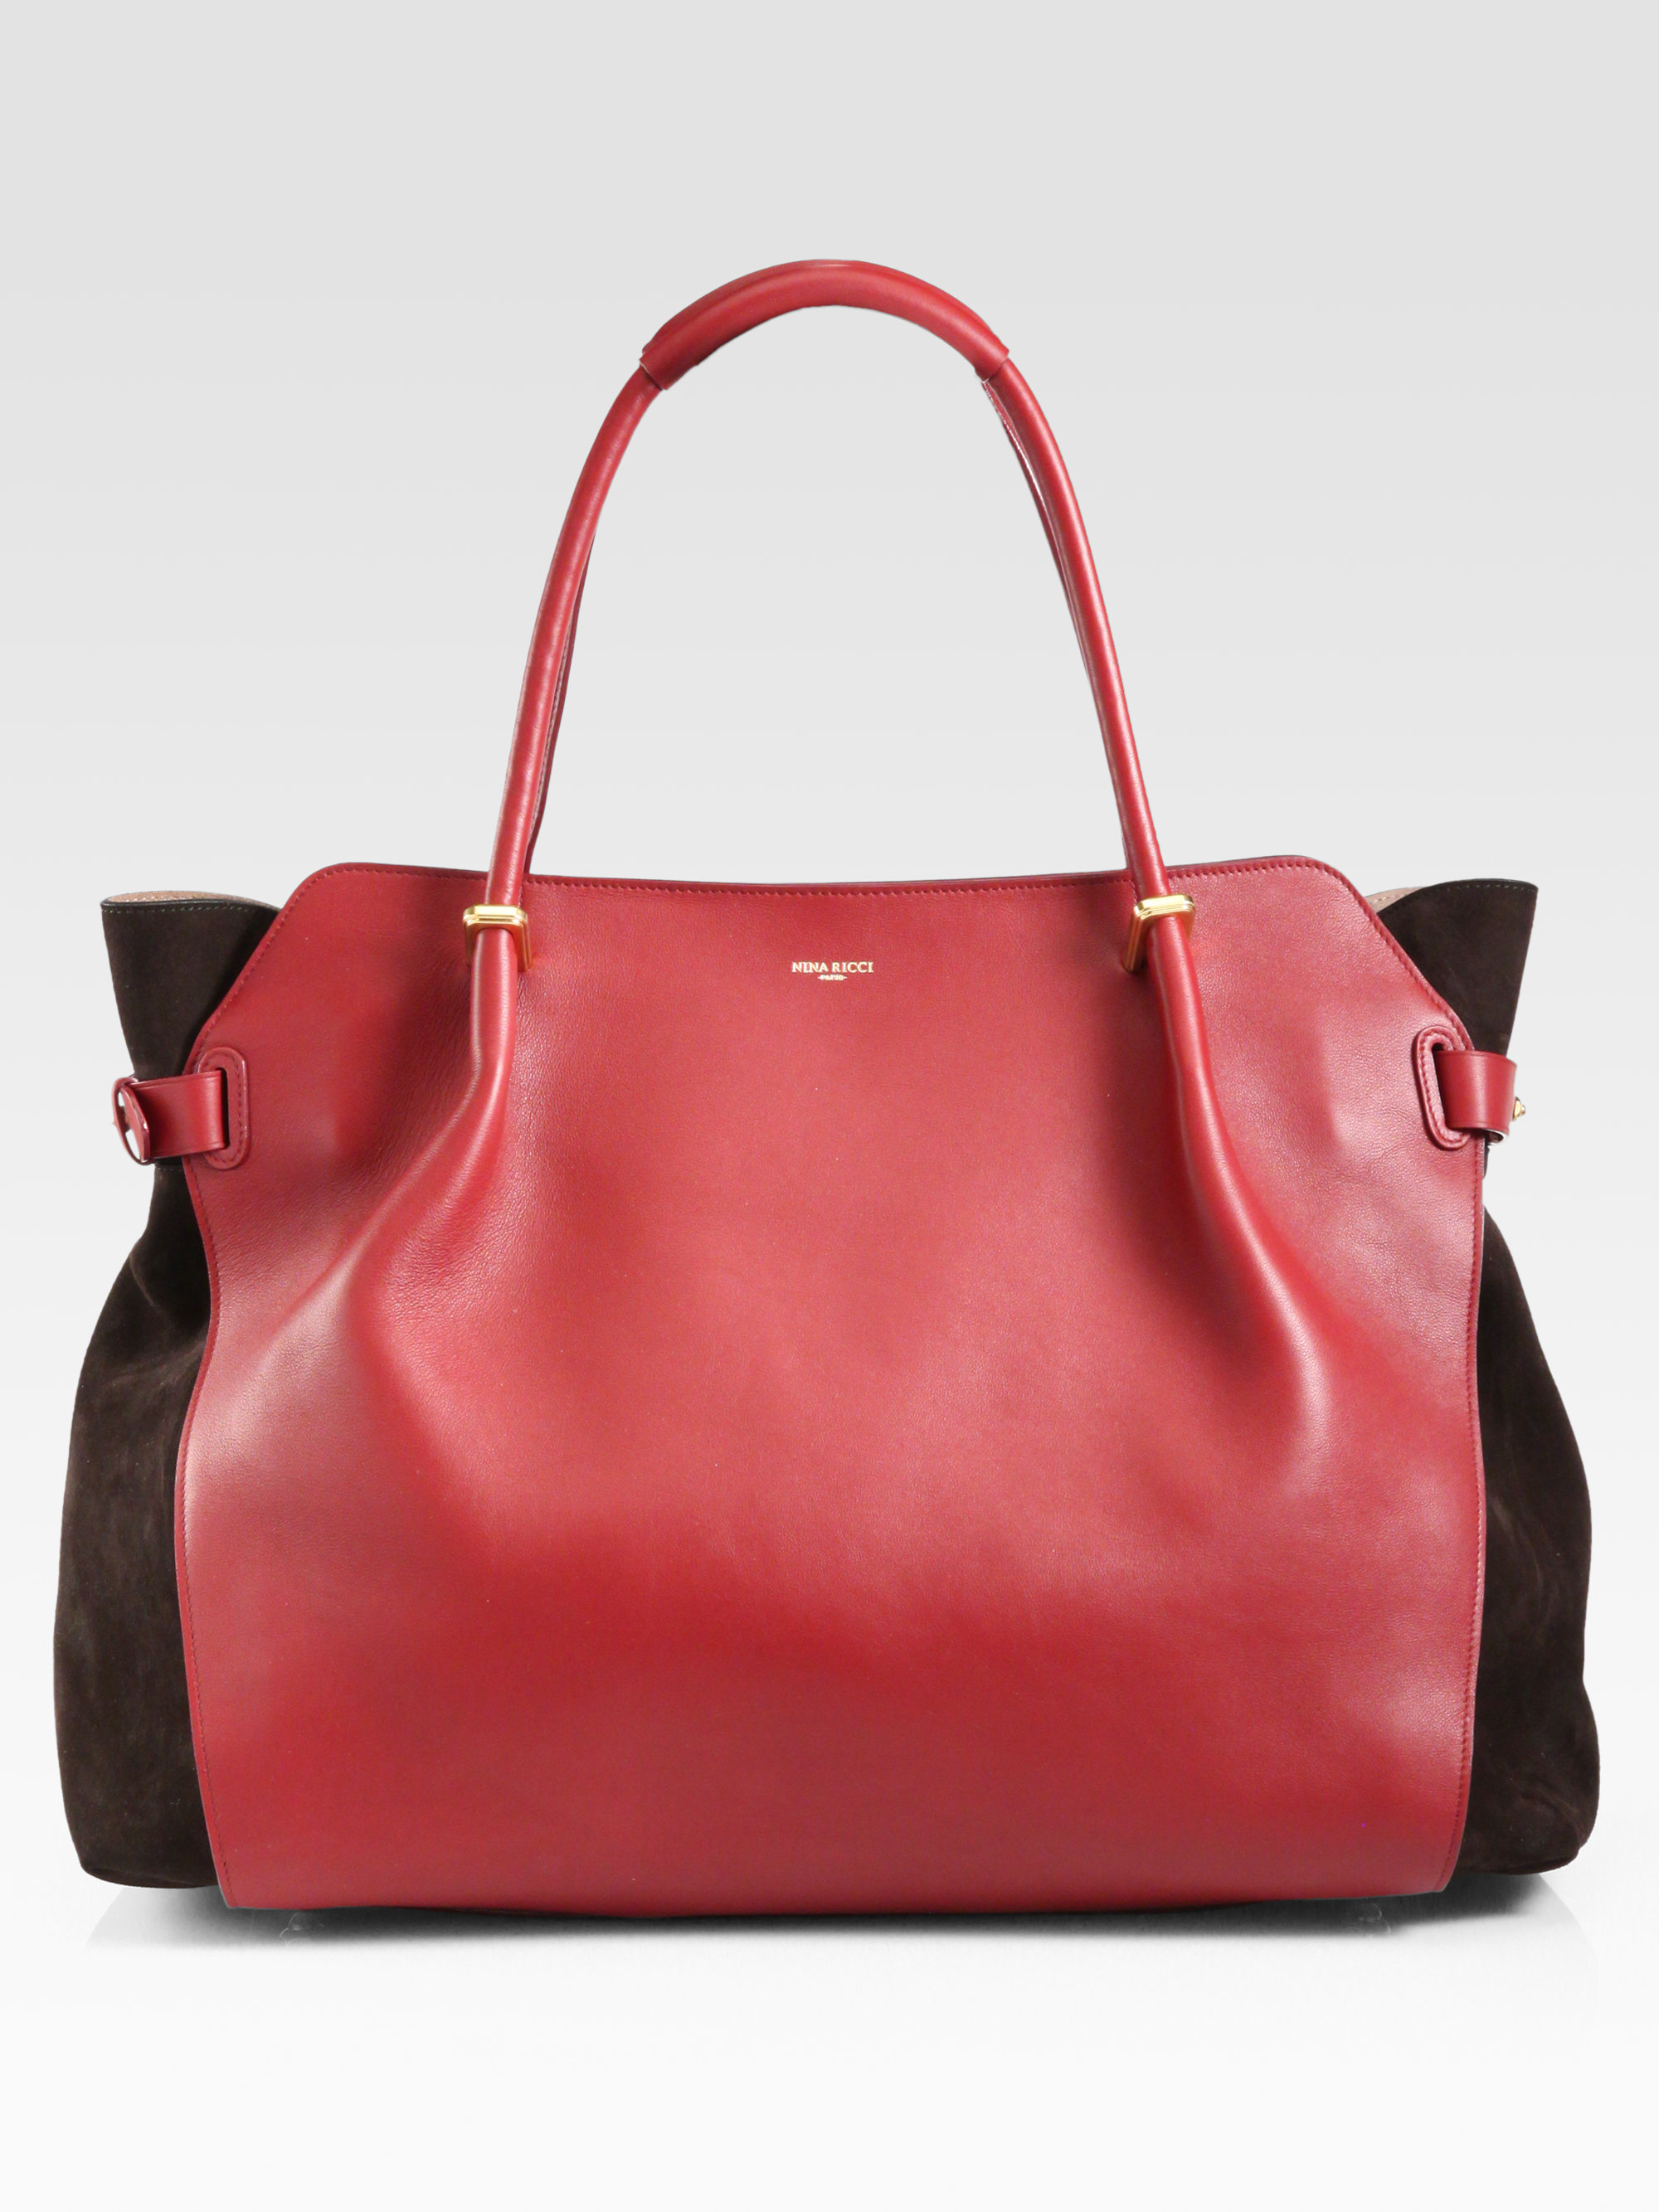 4b4b54a6c1 Lyst - Nina Ricci Marche Suedepaneled Leather Tote in Red